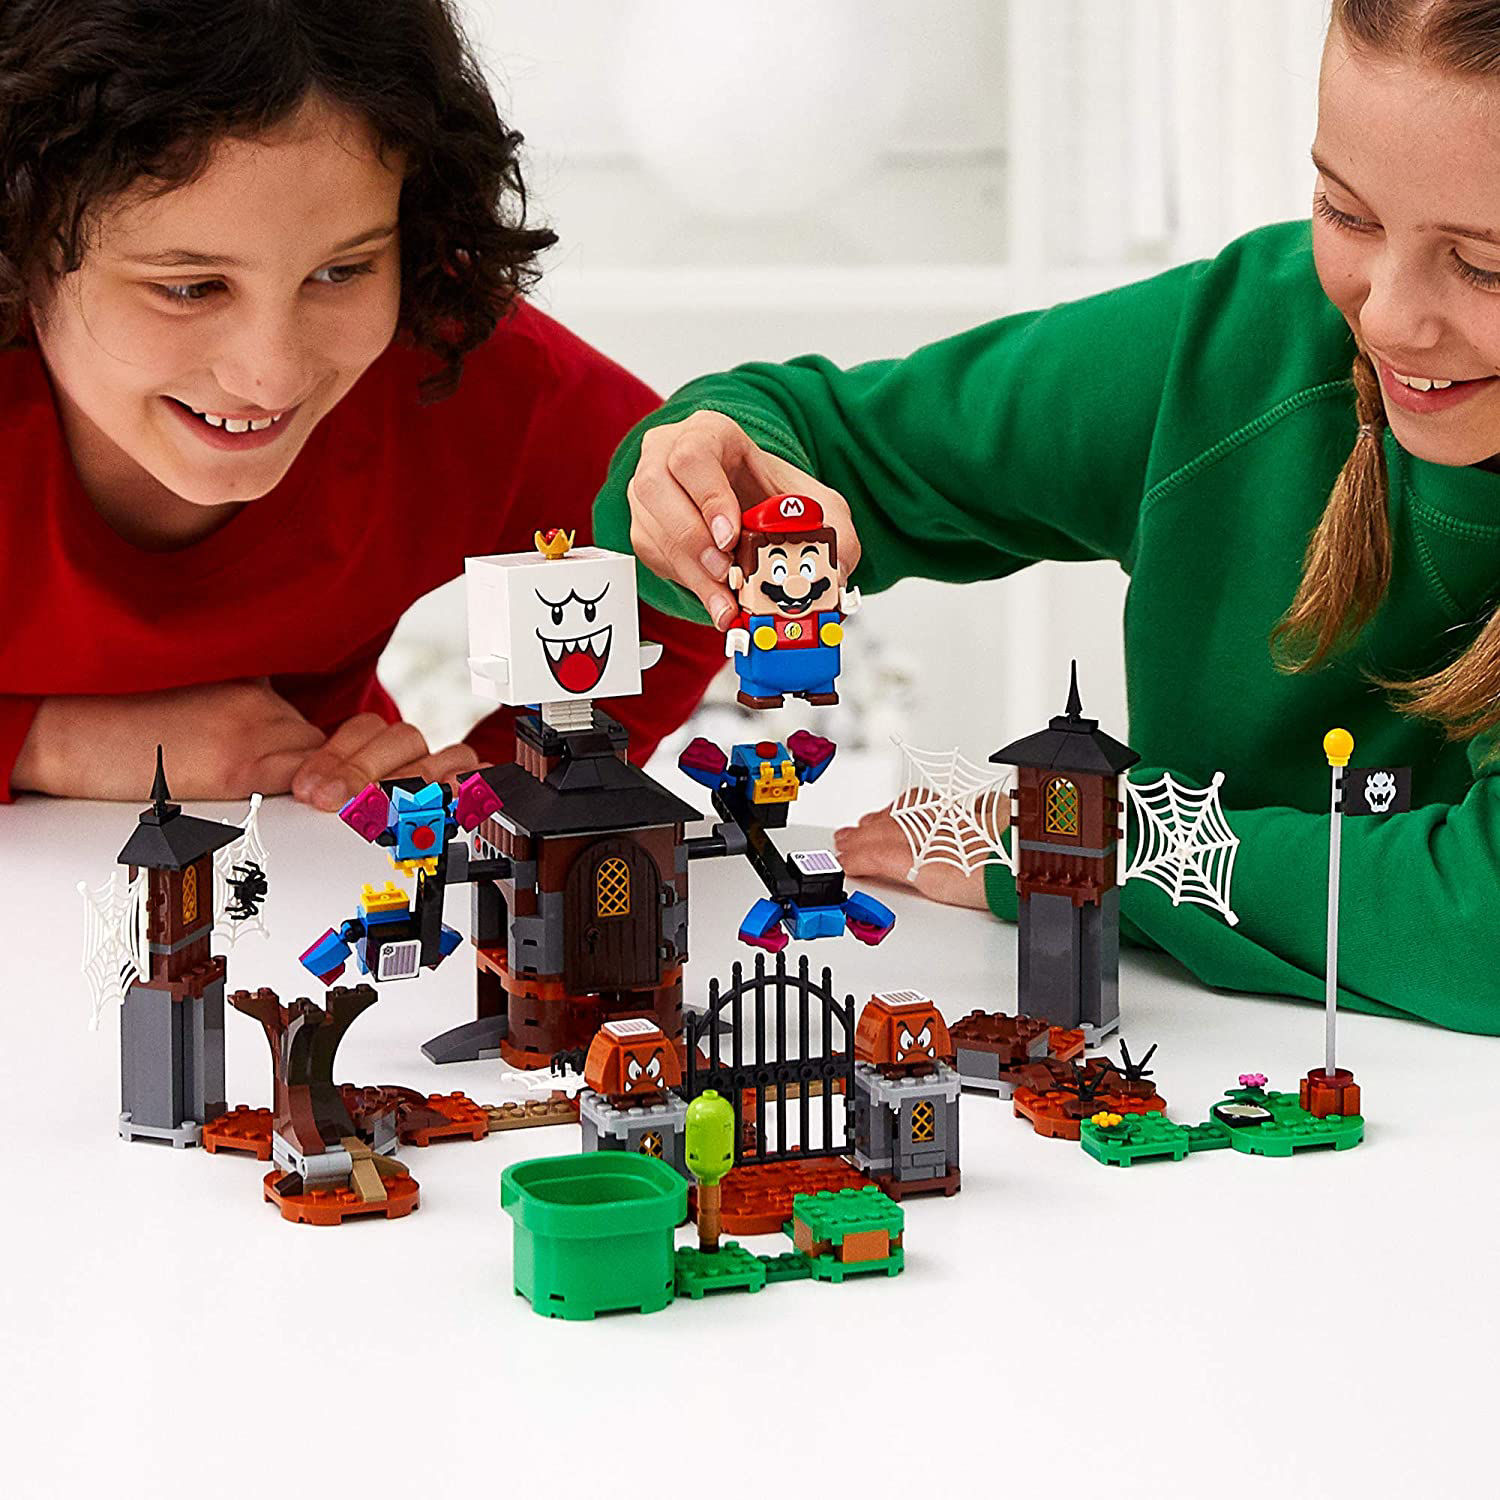 Lego King Boo and the Haunted Yard Expansion Set  71377